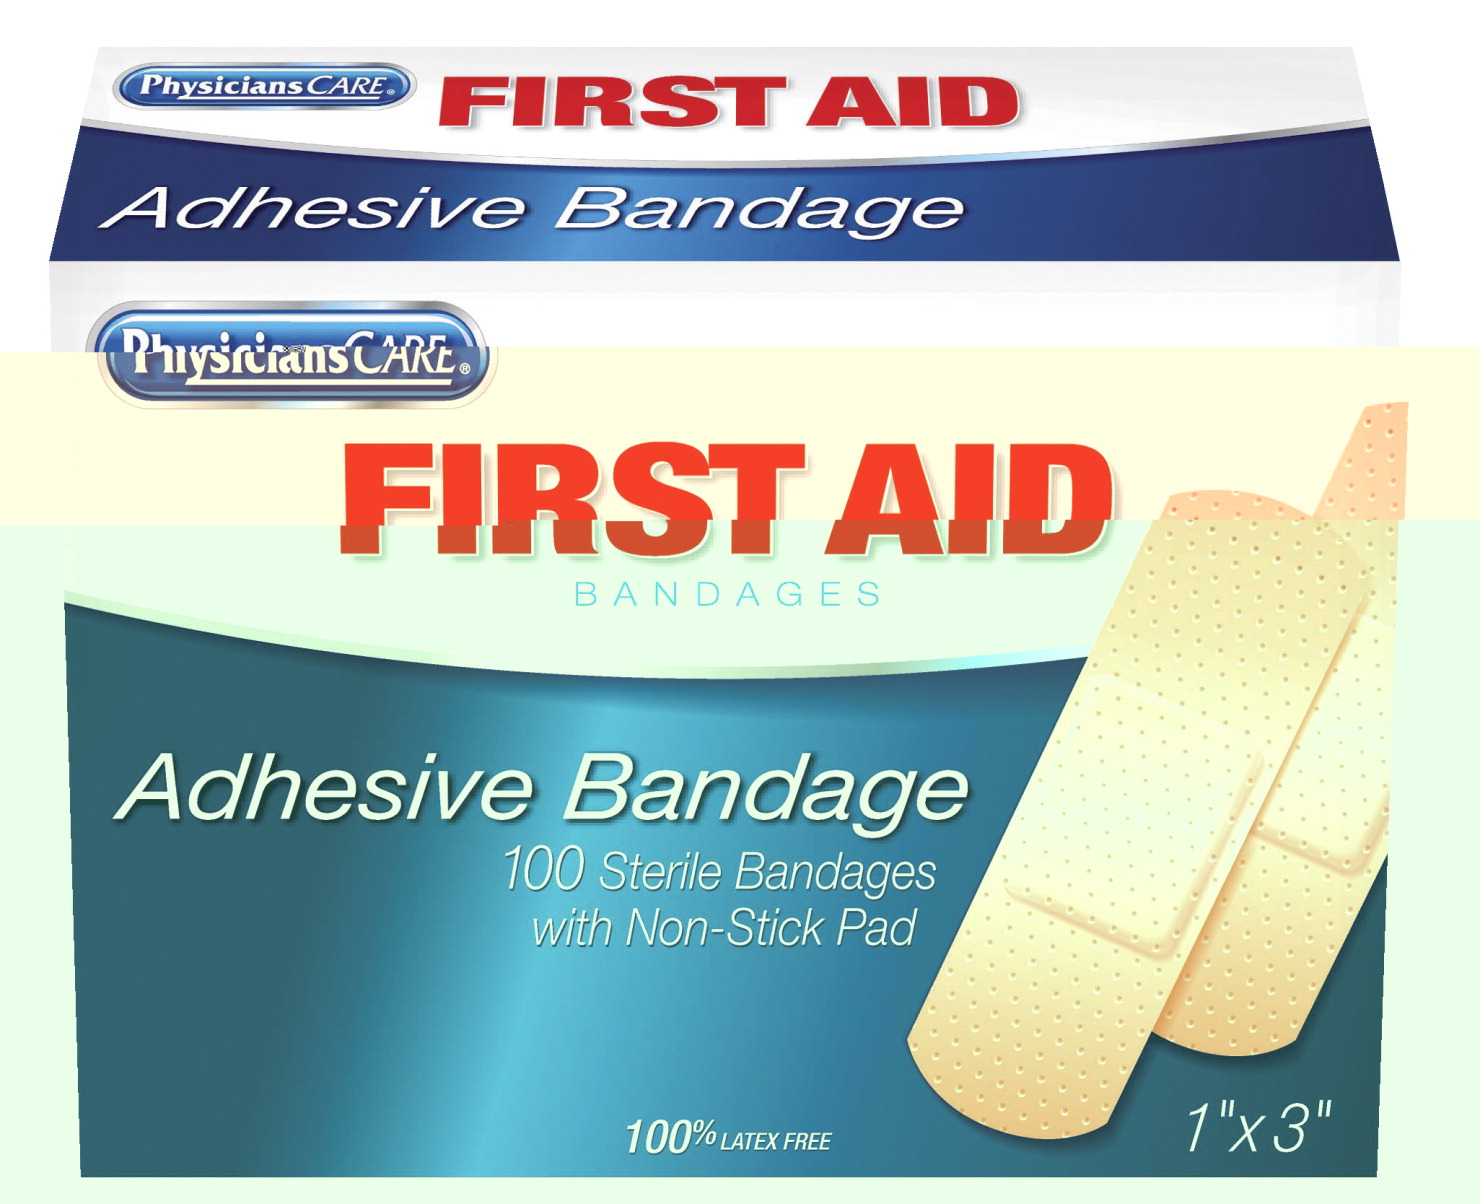 First Aid Bandaging Hand Stock Photo - Image: 41072978